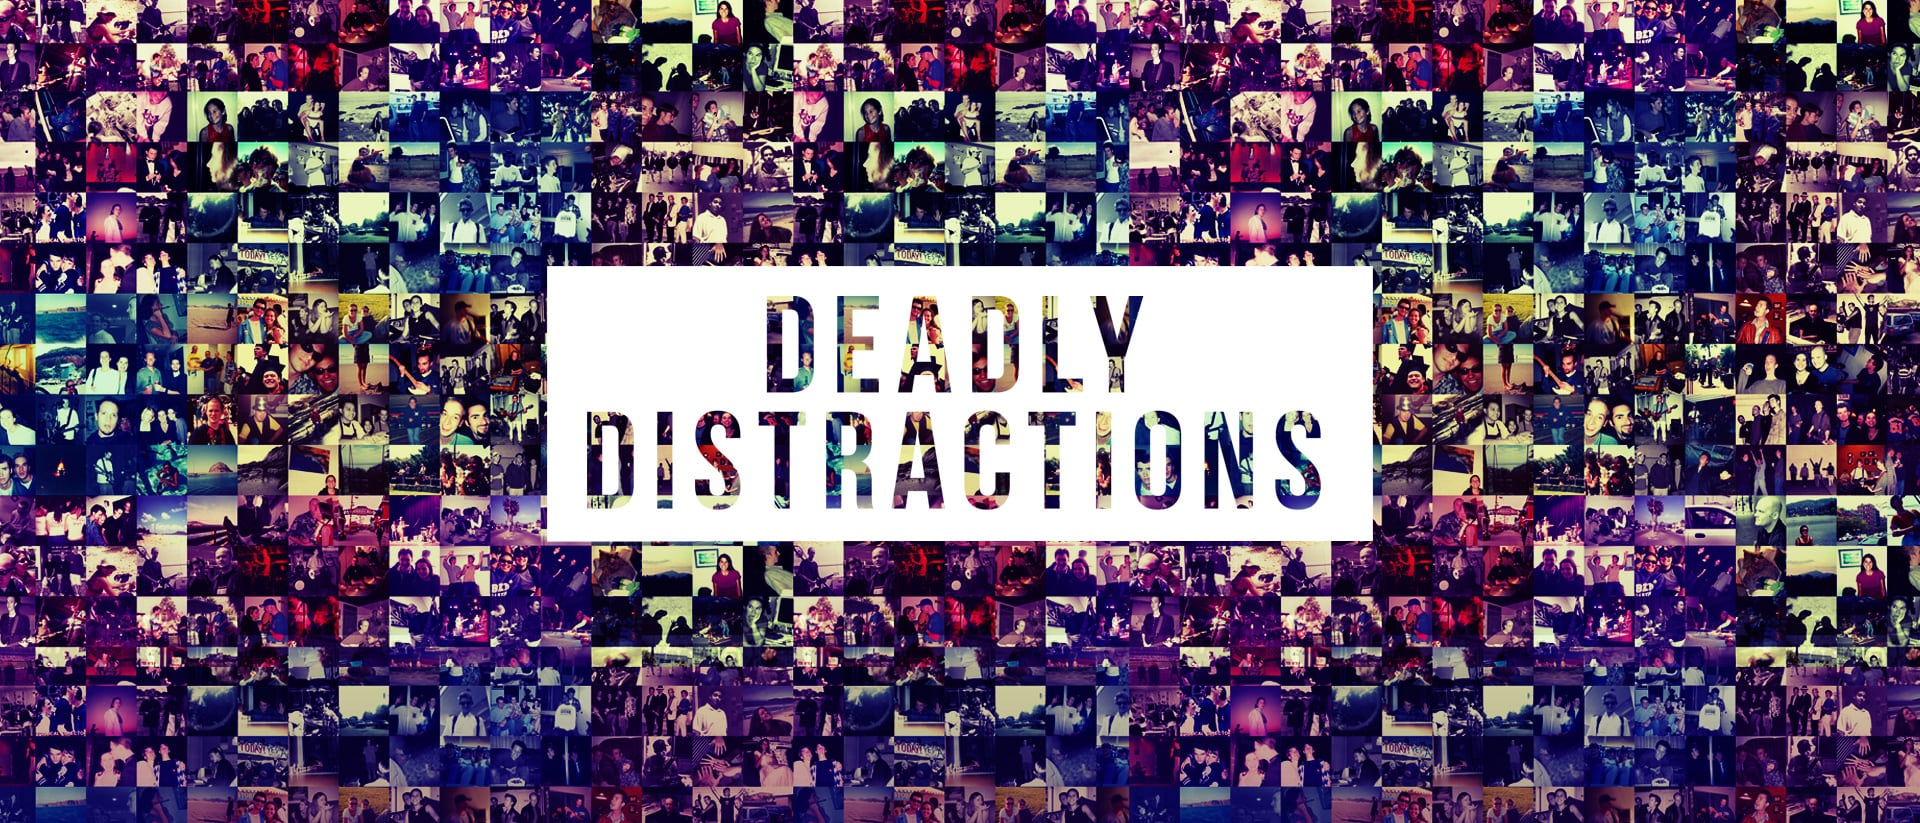 Deadly Distractions